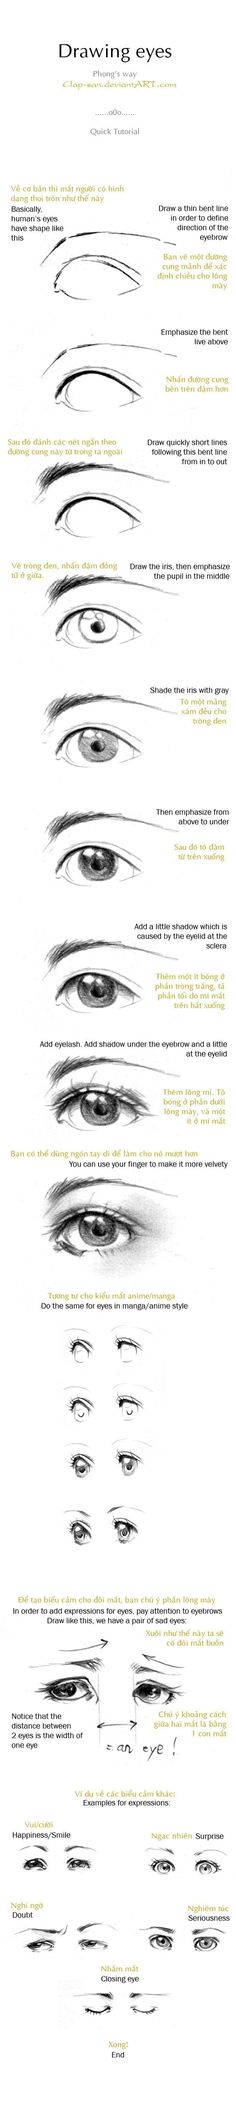 Eye+Drawing+Reference+Guide